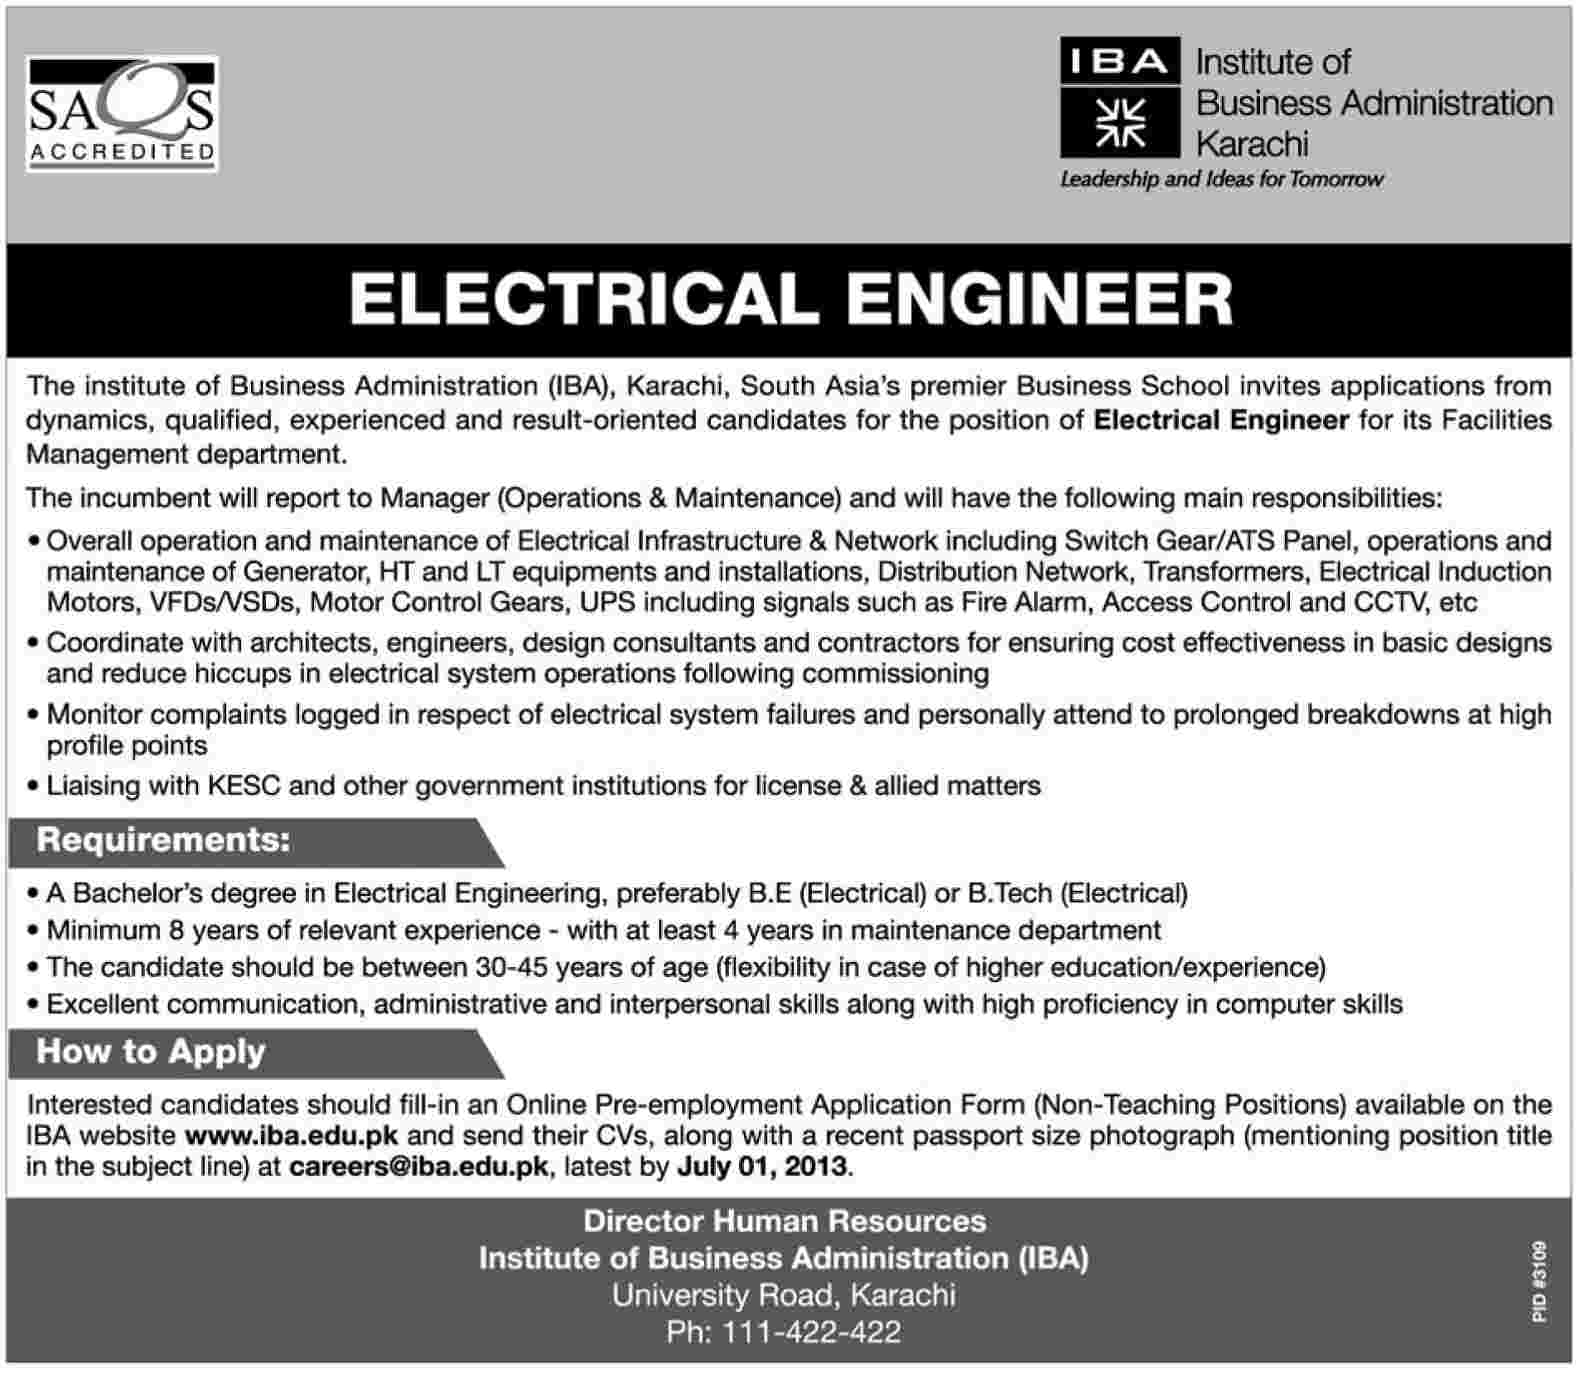 job in iba institute of business administration karachi as